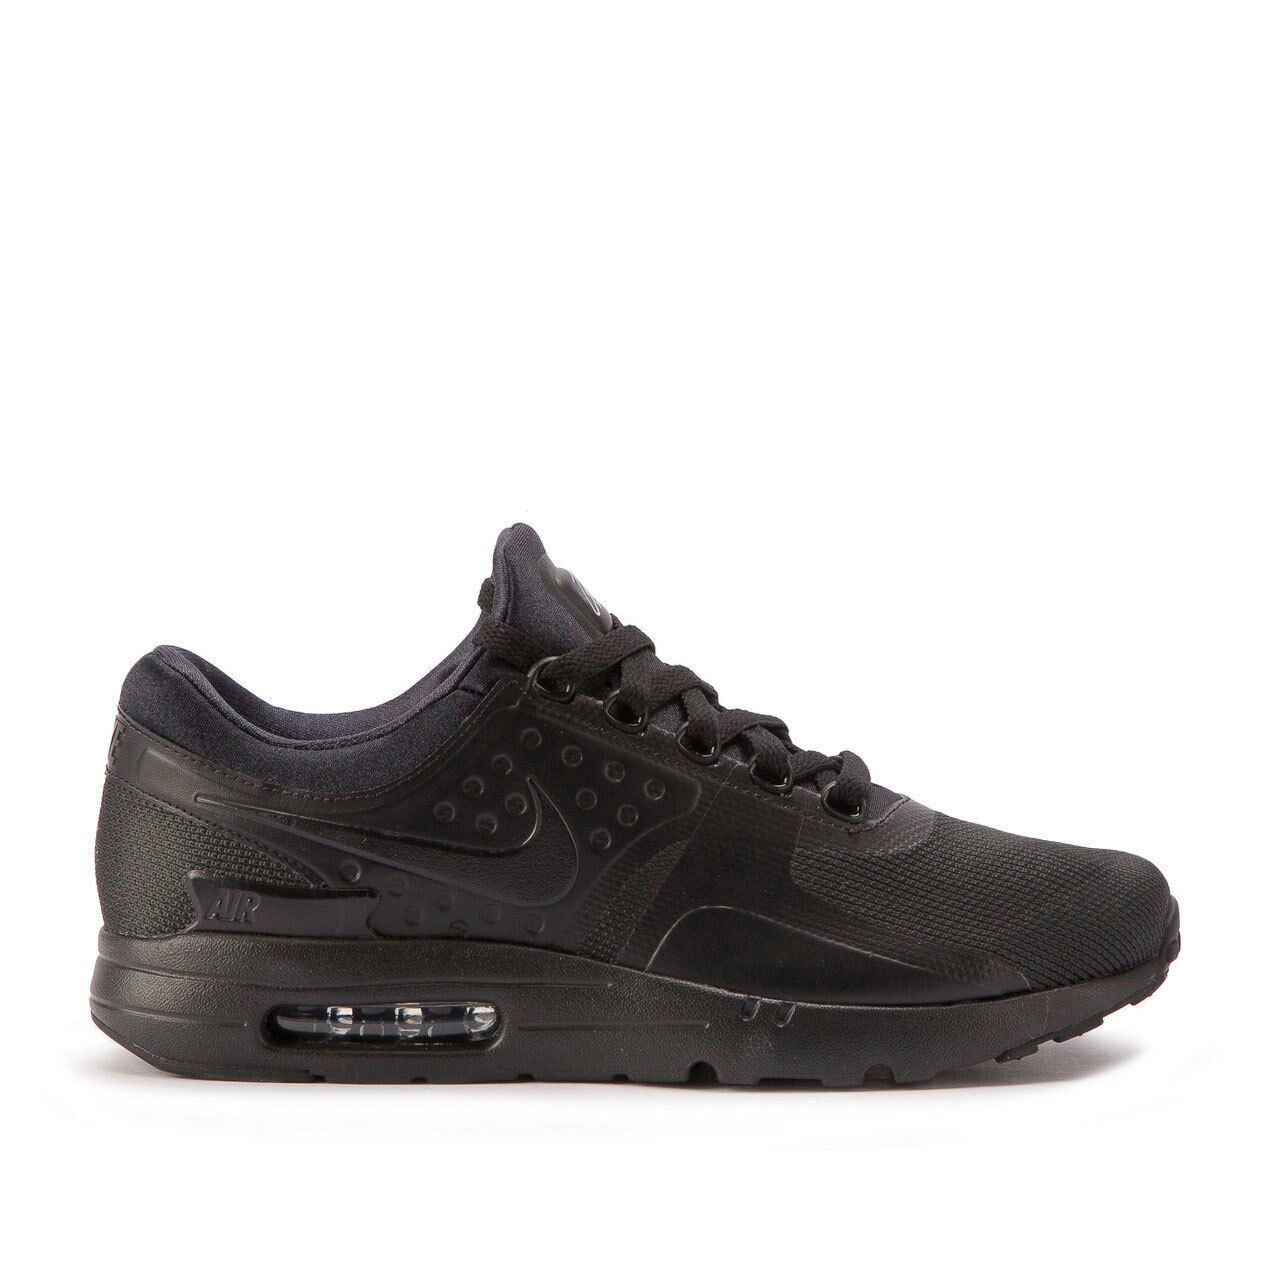 Nike Men's AIR MAX ZERO ESSENTIAL NEW AUTHENTIC Black/Black-Black 876070-006